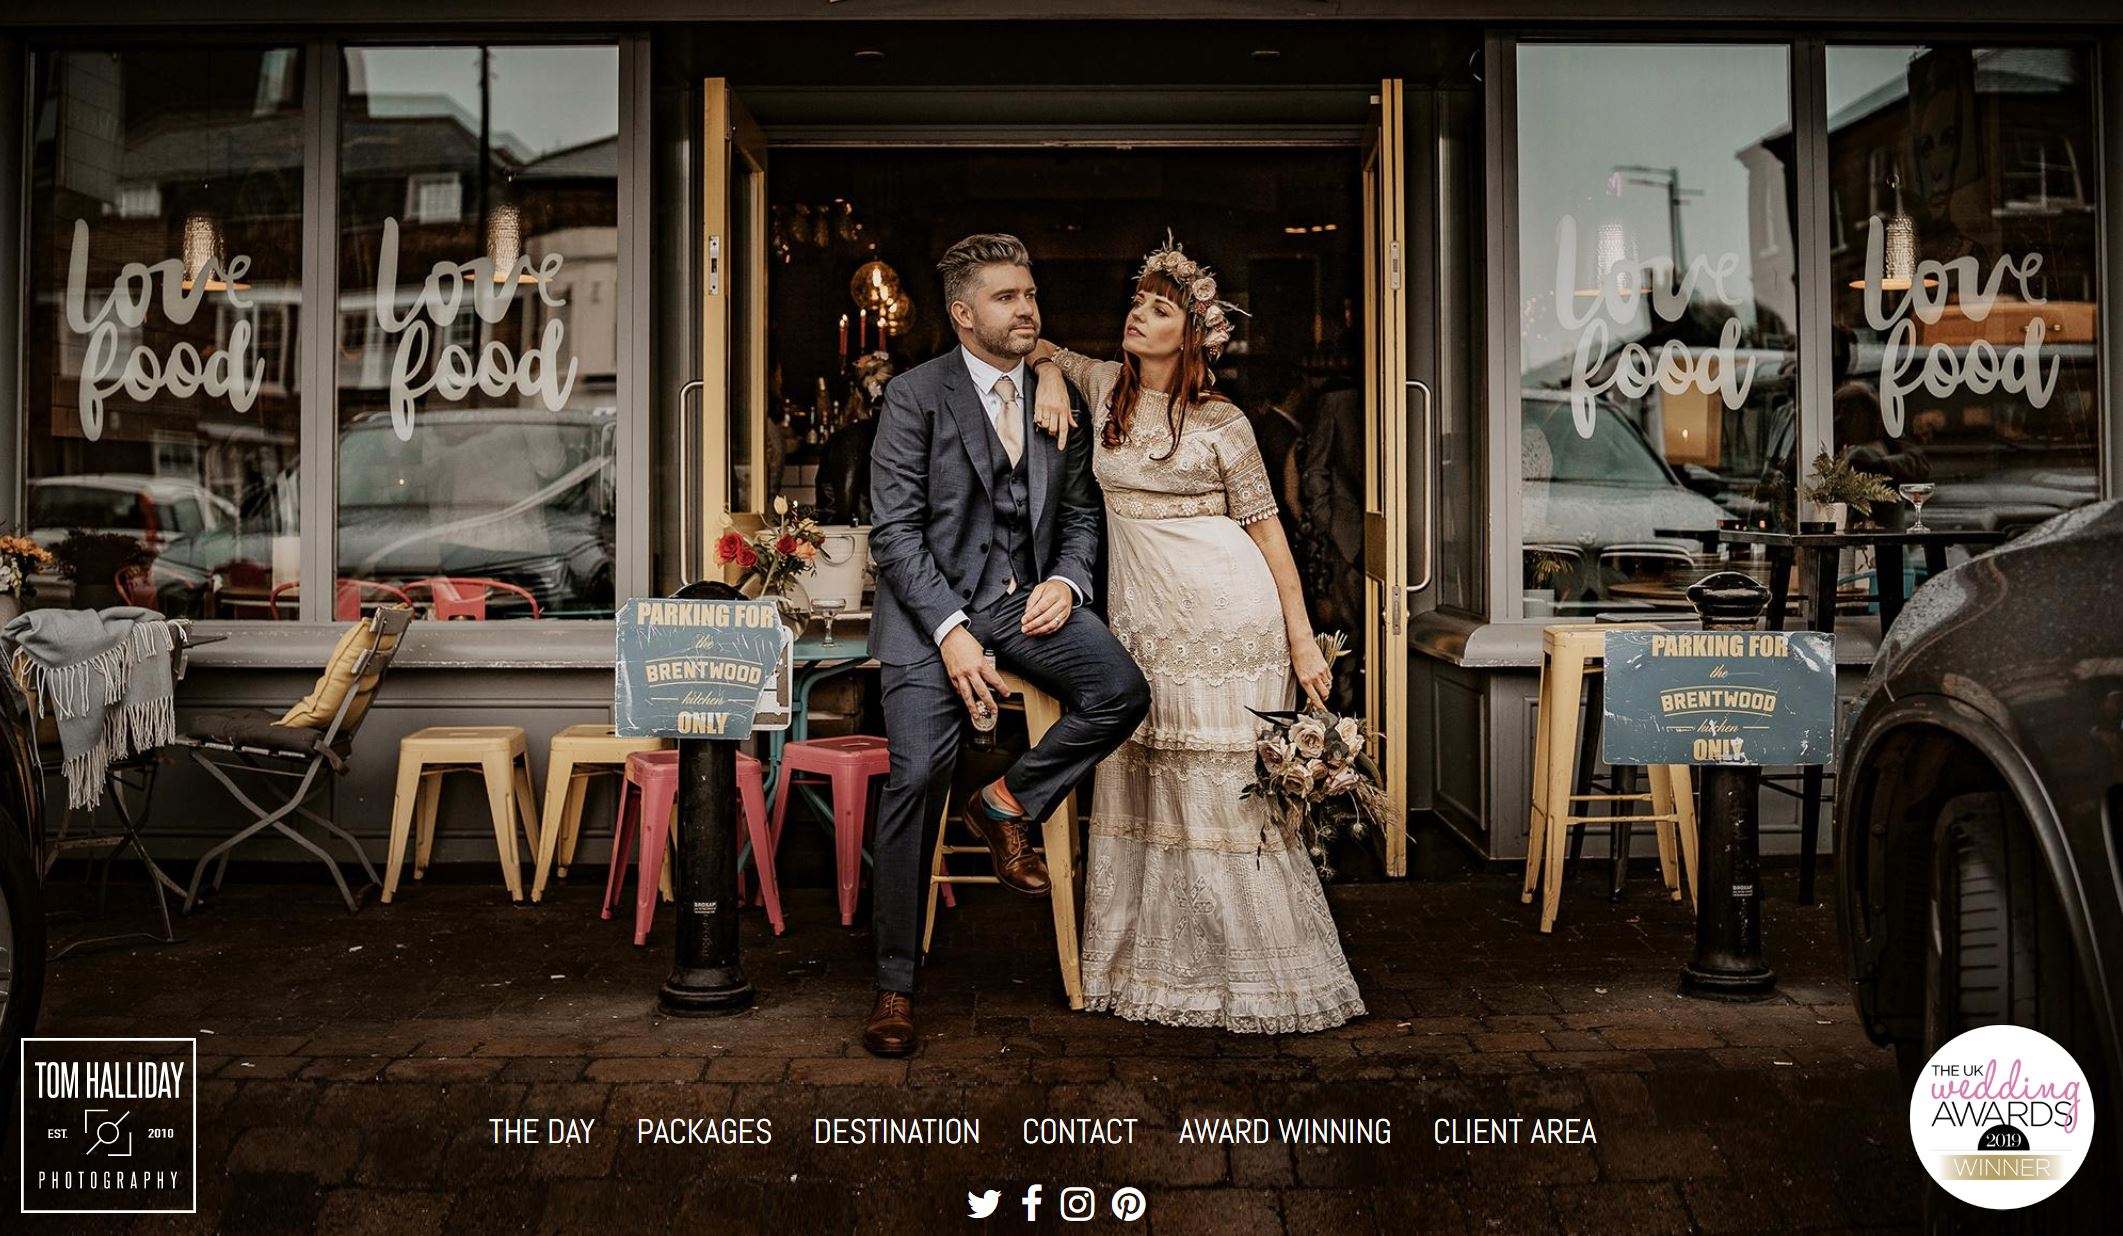 Tom Halliday Photography - Award recognised photographer Tom Halliday is one of my favourite photographers to work with in Essex. Capturing beautiful images for couples on their day he really is my top pick.